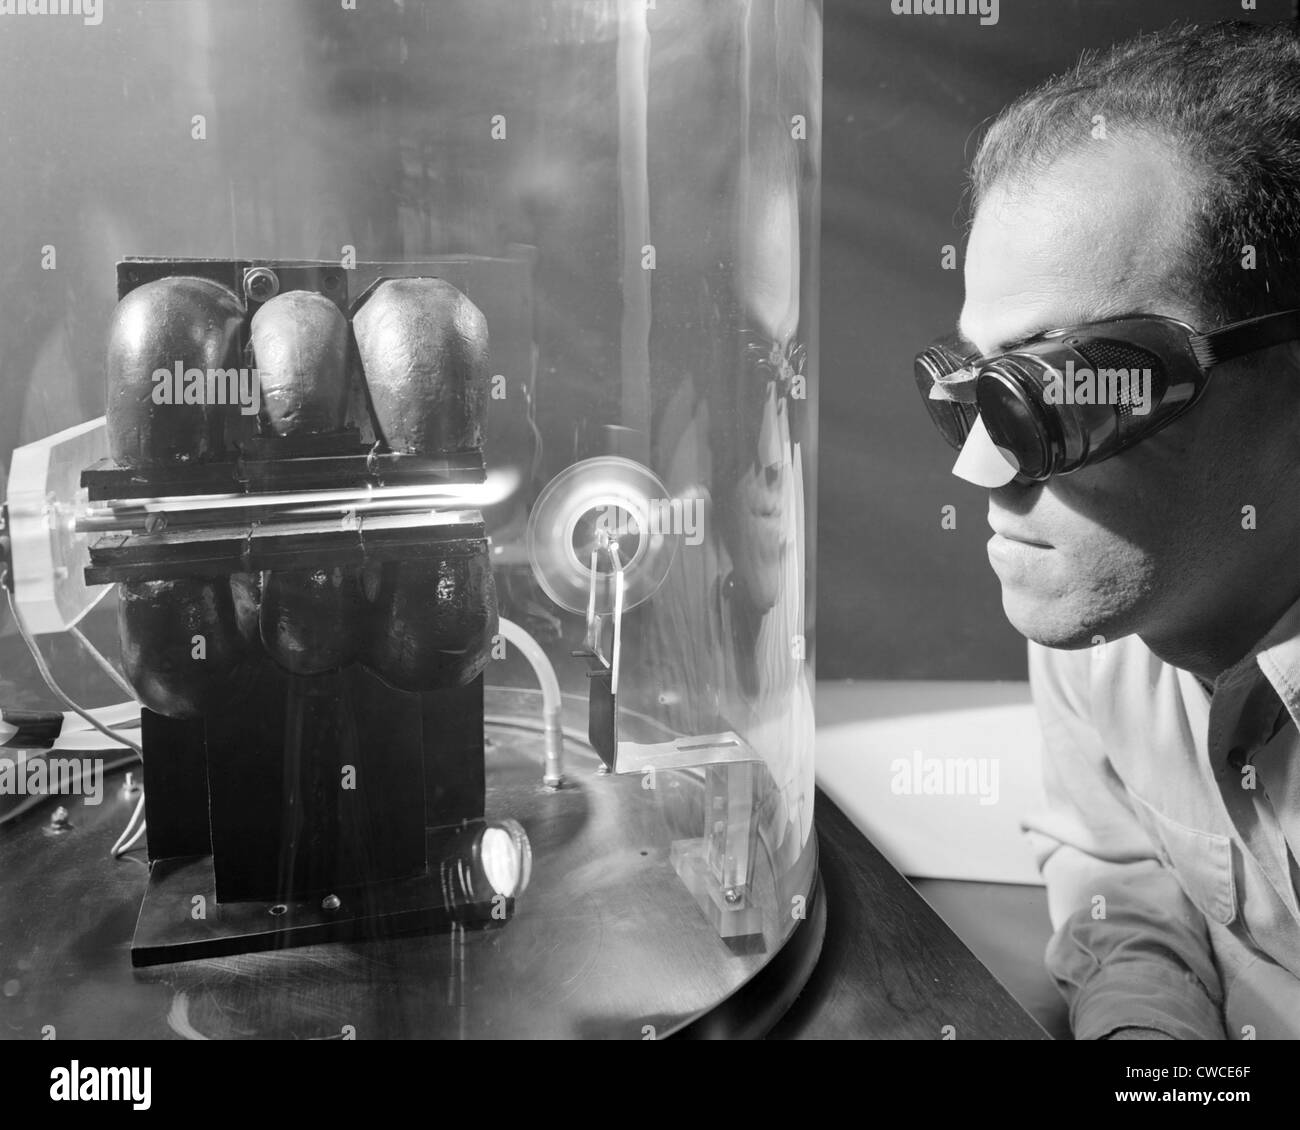 Scientist with protective glasses and nose cover experimenting with Ion Jet rocket propulsion. Sept. 27, 1957. - Stock Image